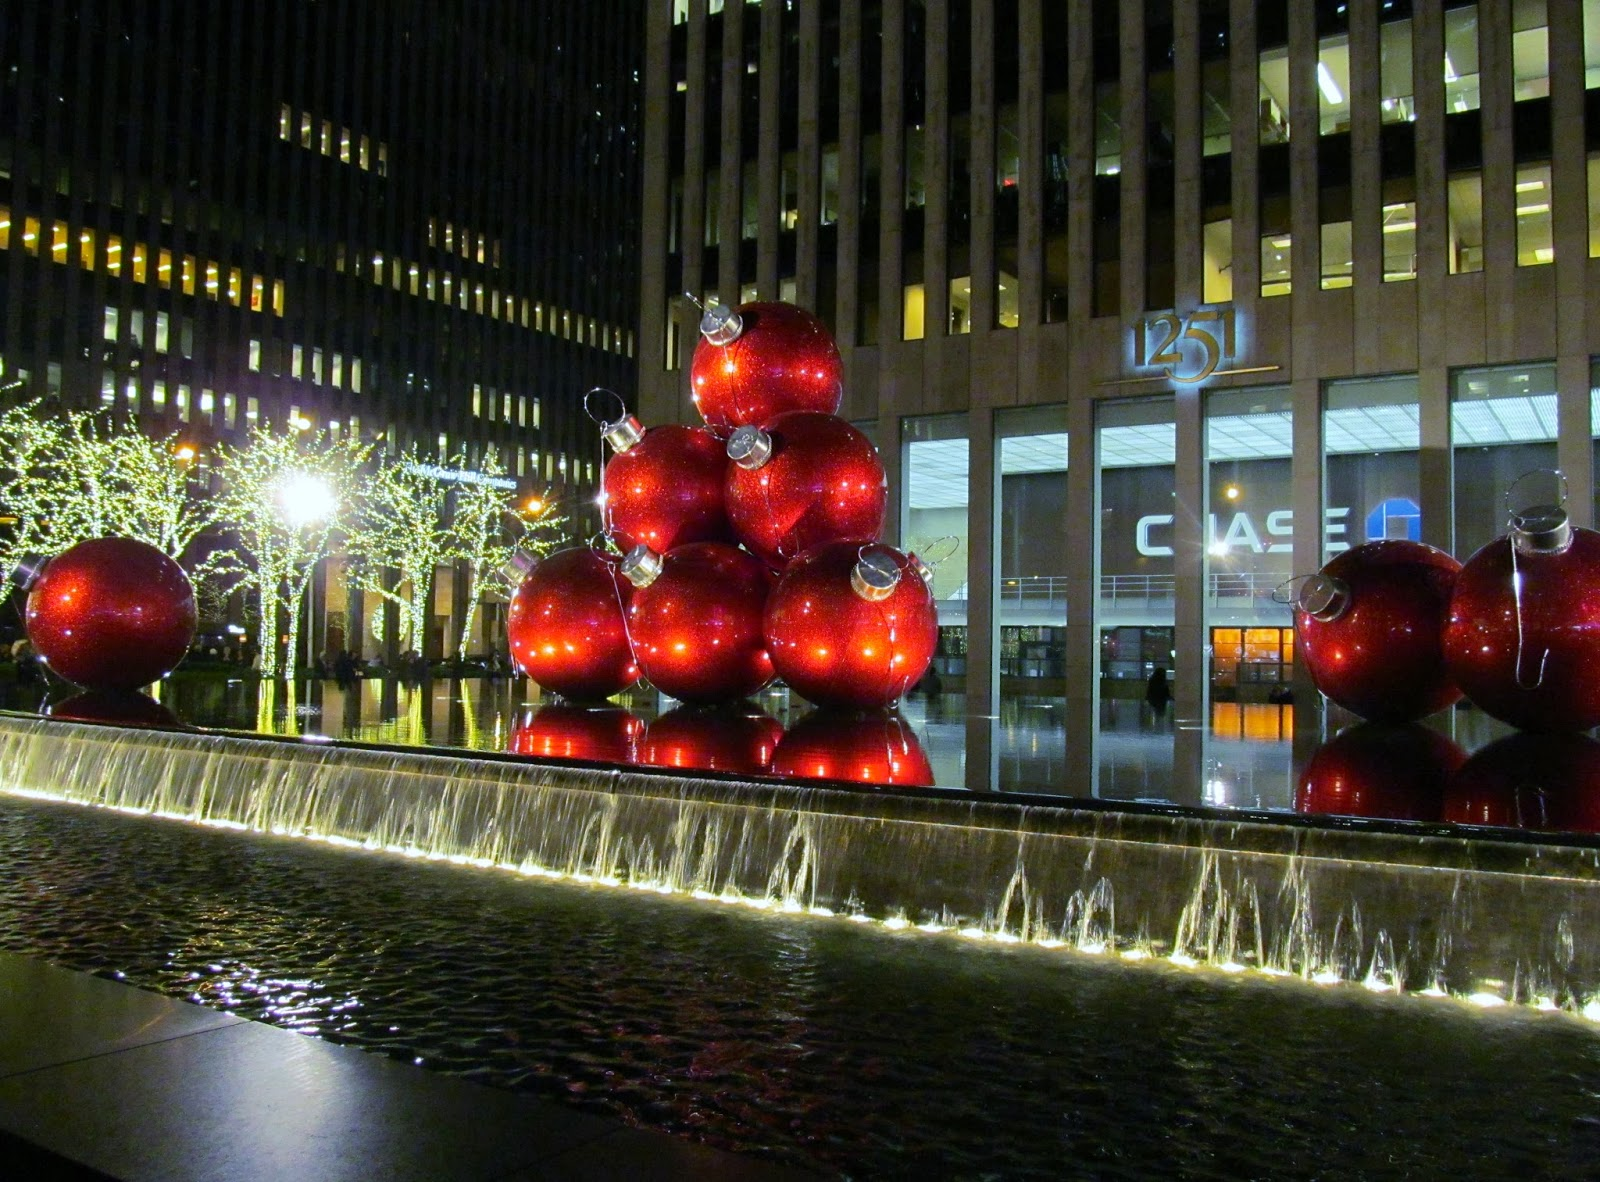 Pink In The City: 6th Avenue New York City Christmas Decor